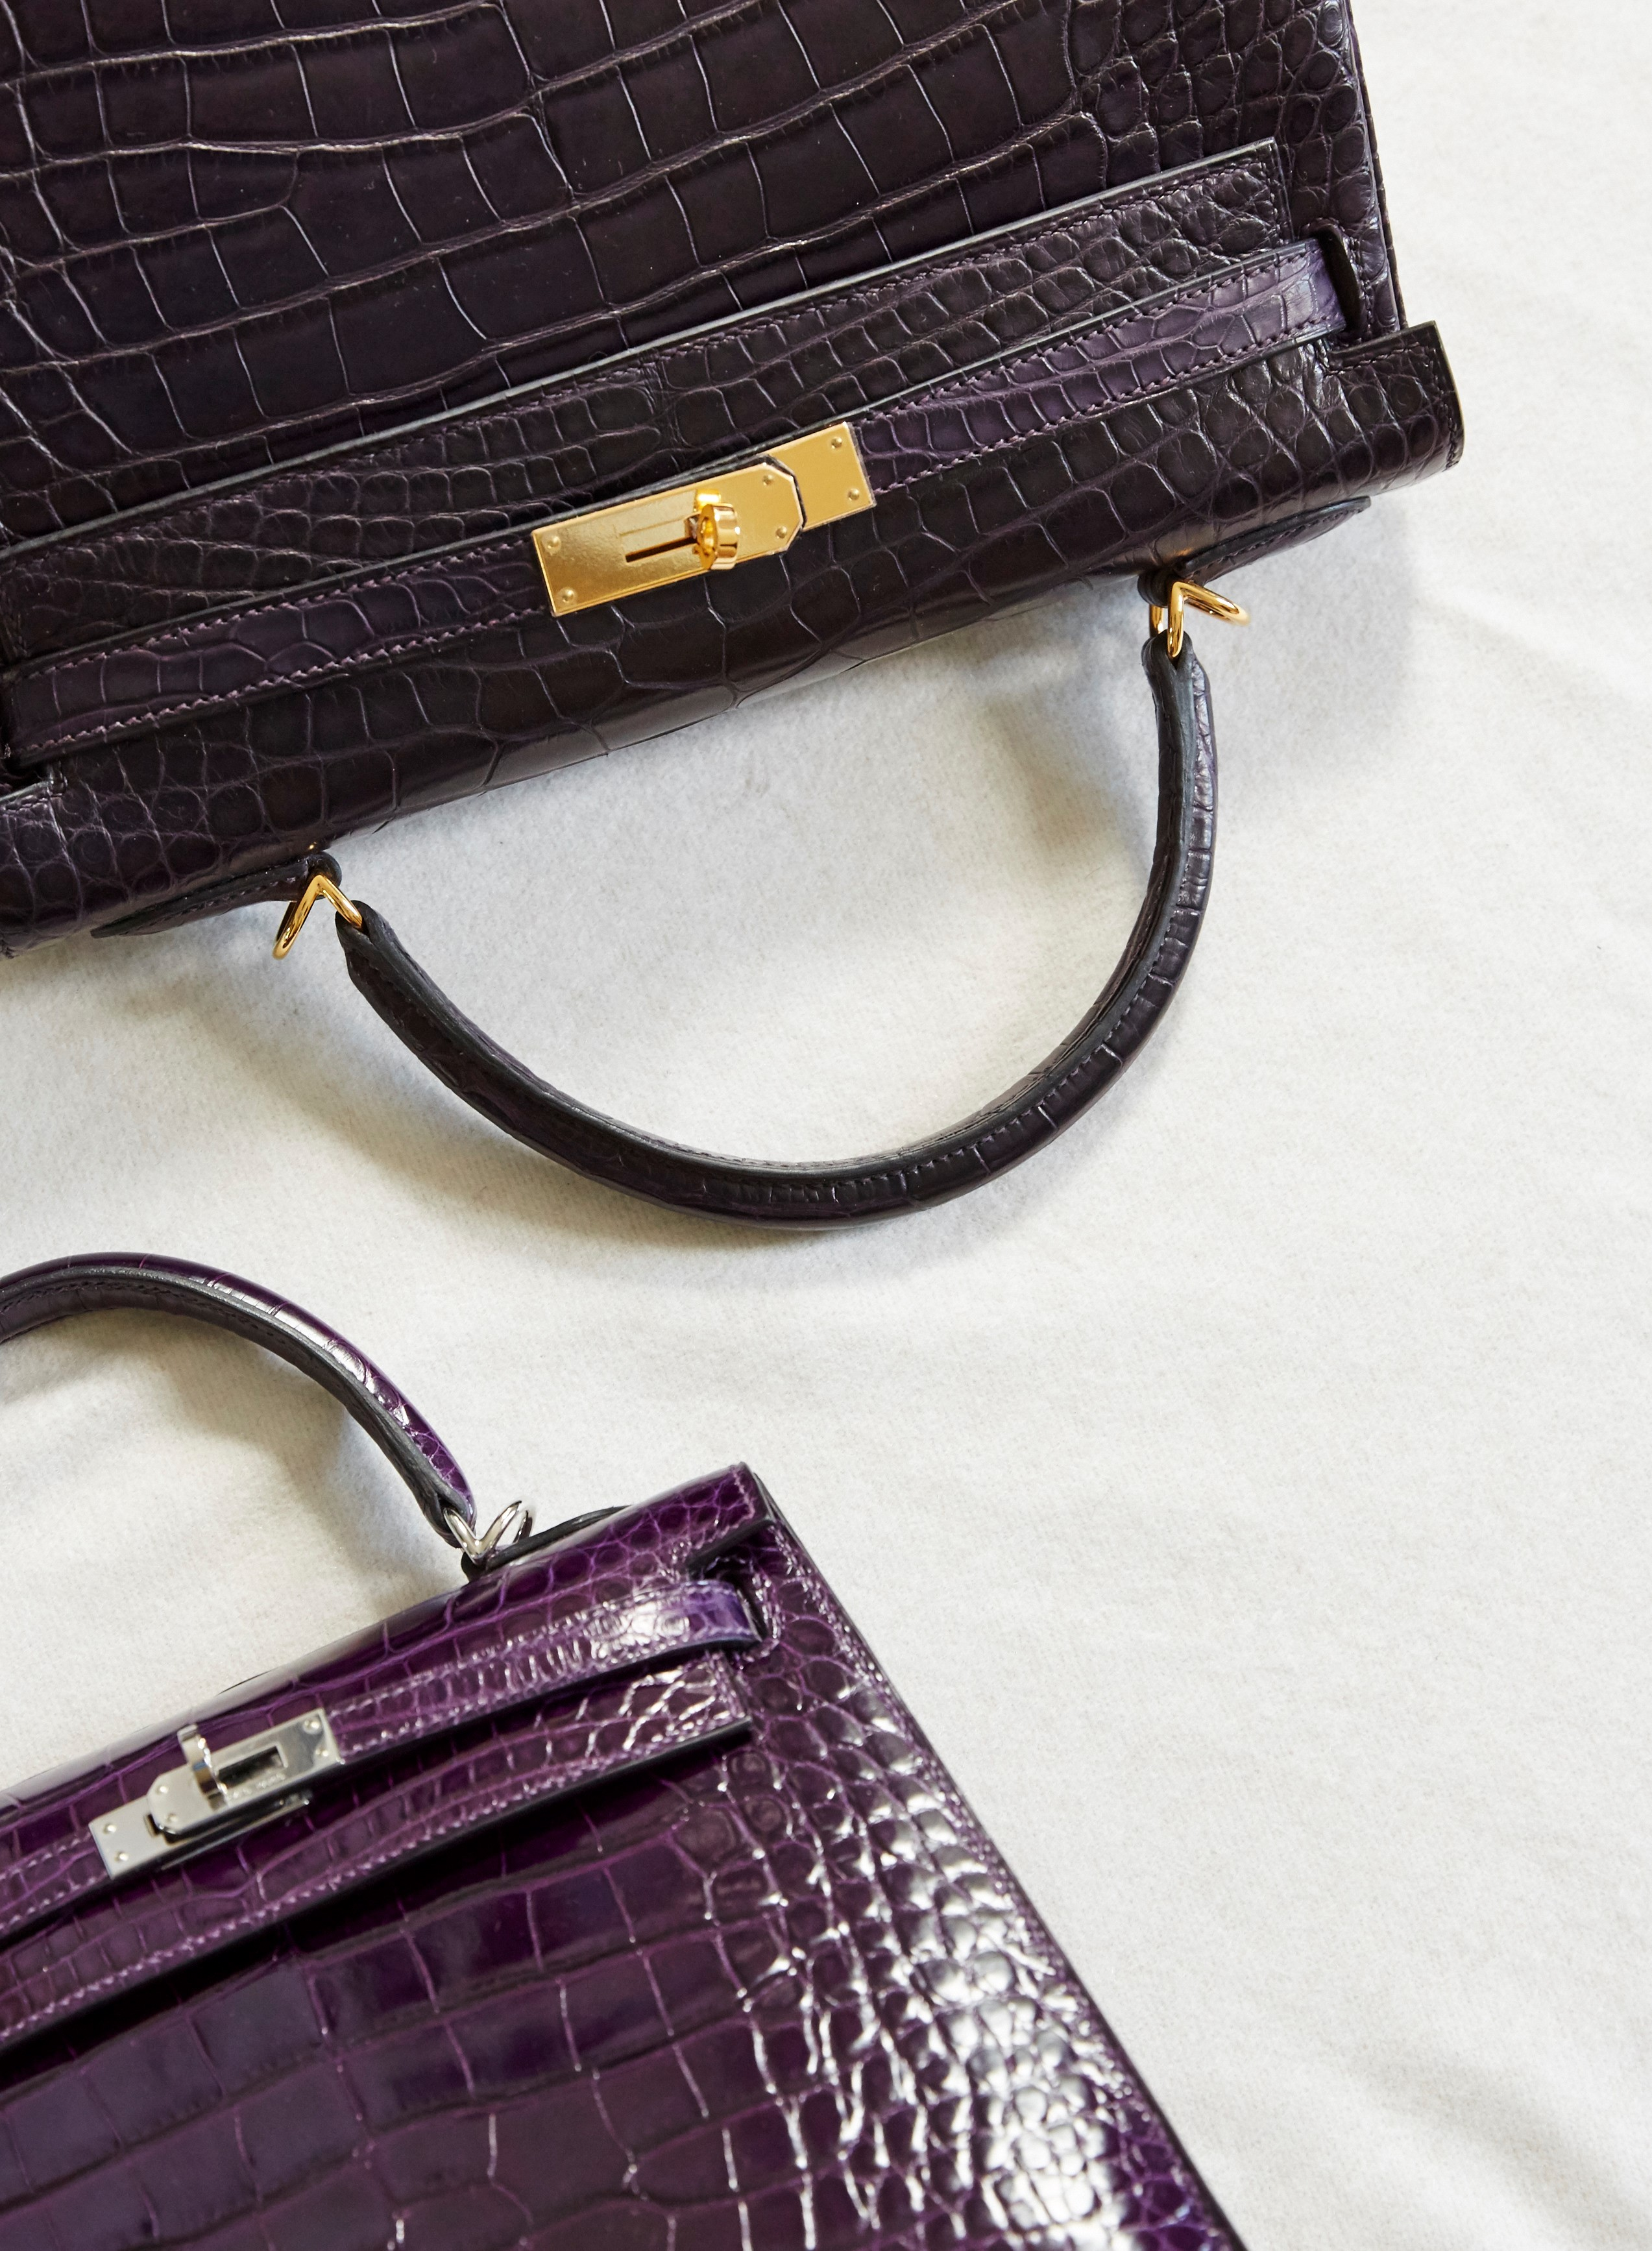 Purple Hermes Kelly Handbags